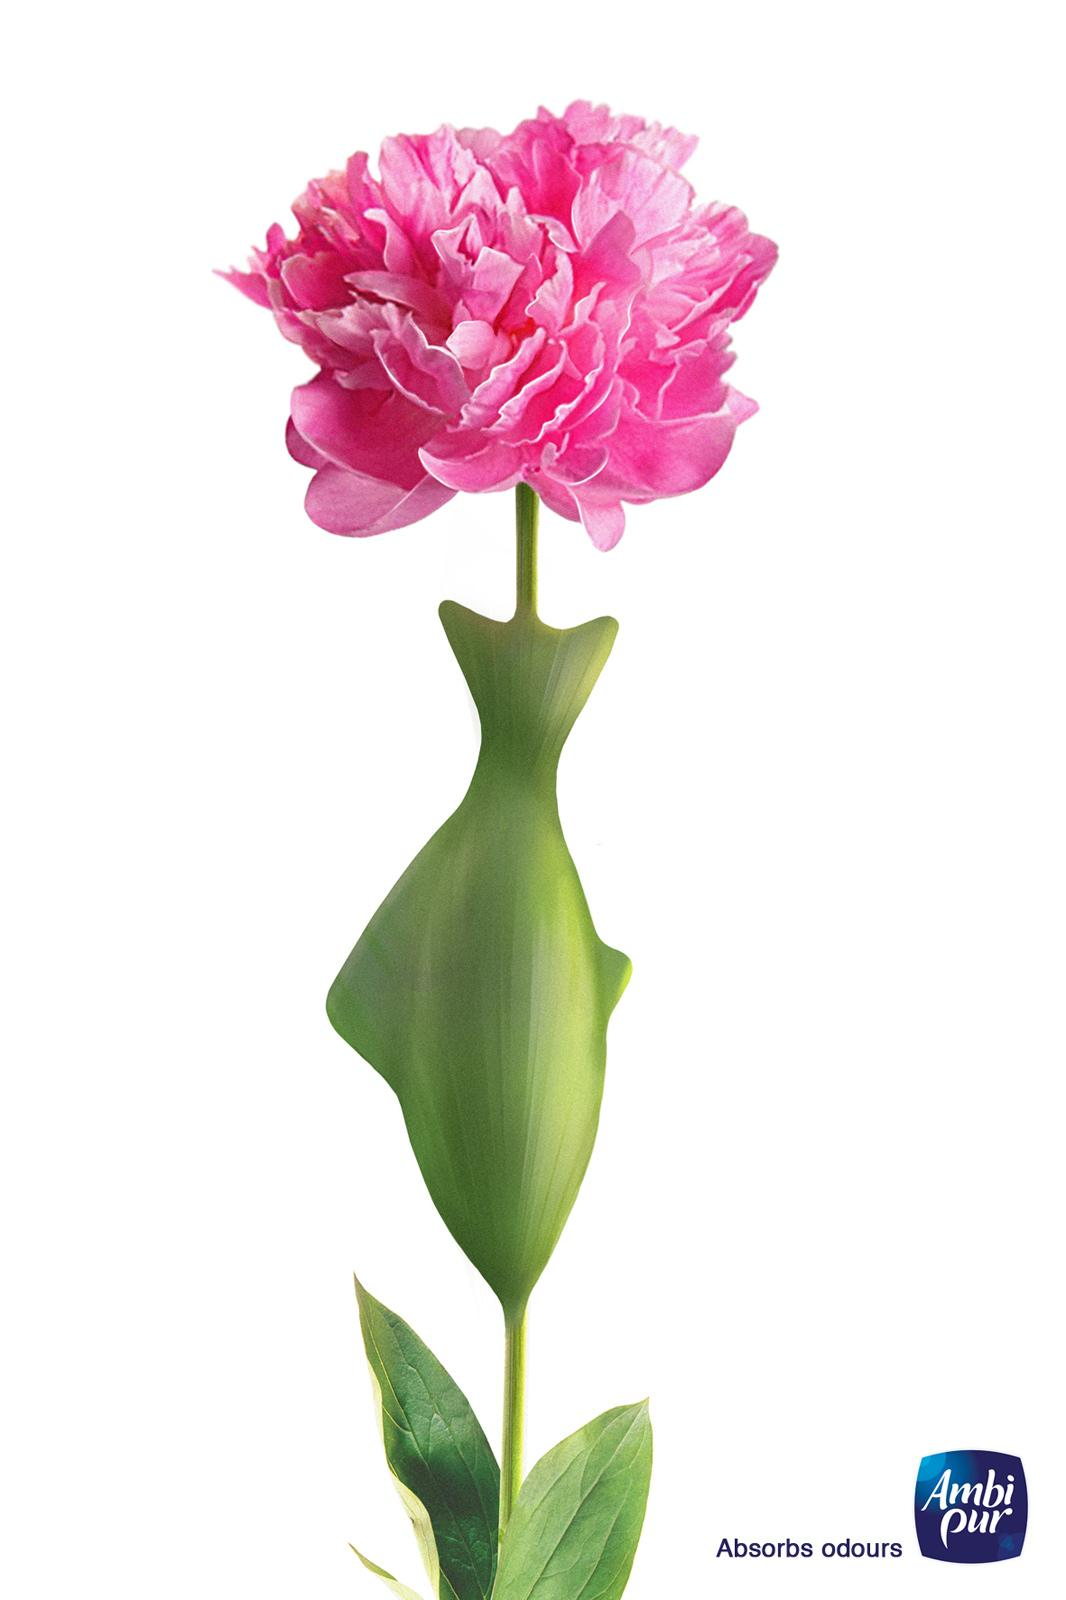 Ambi Pur Print Ad -  Absorbs Odours, Peony